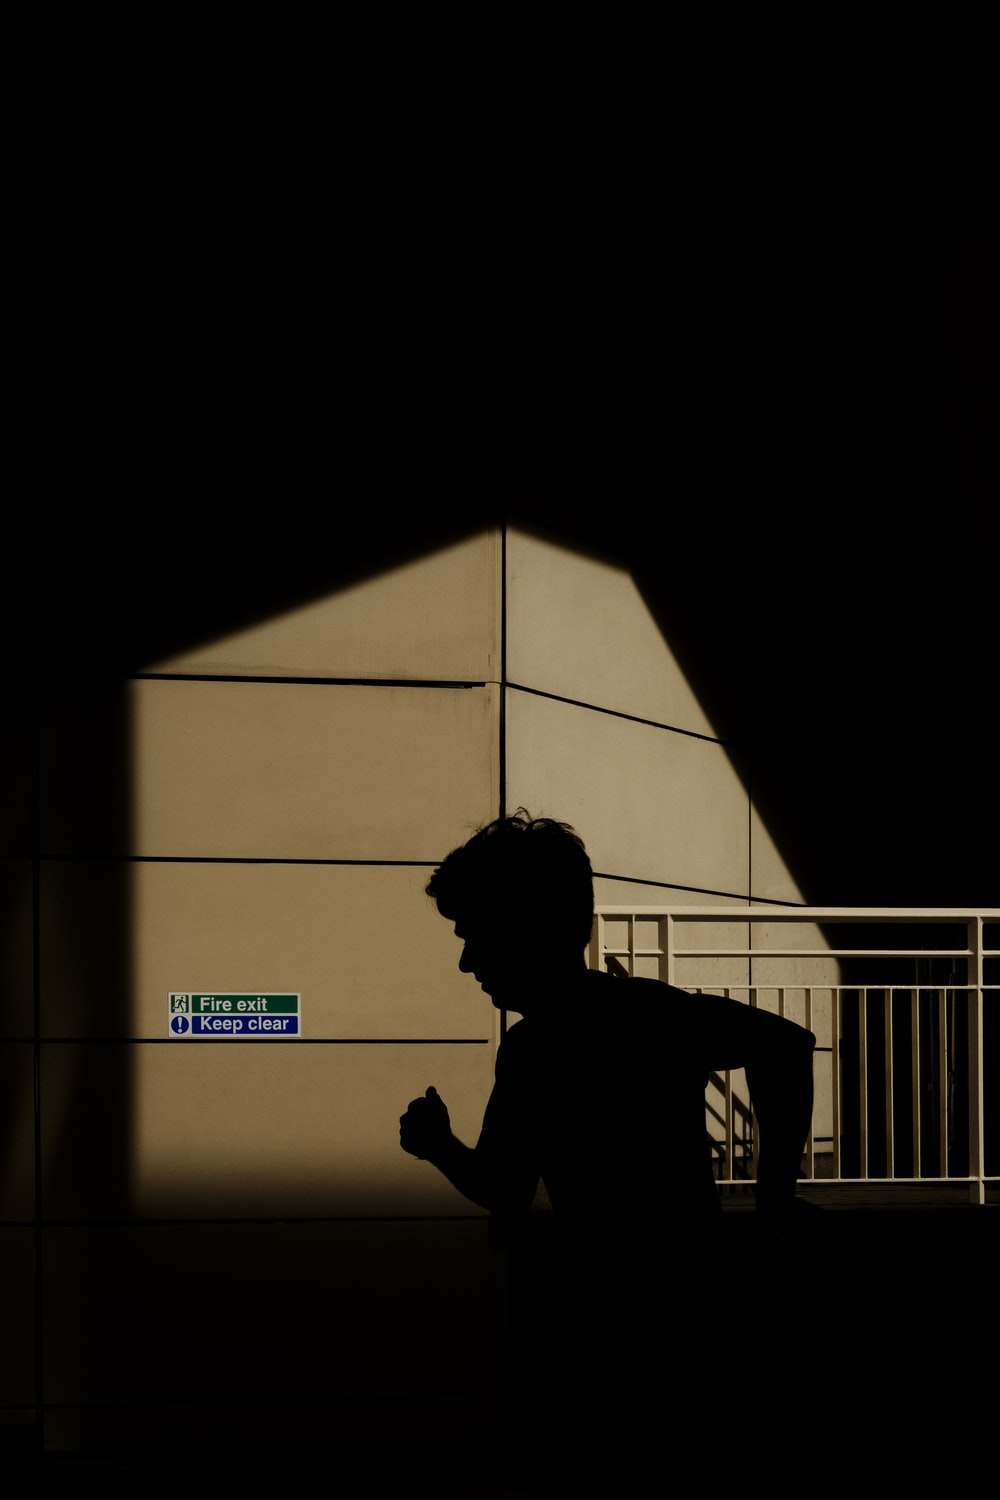 silhouette of running man